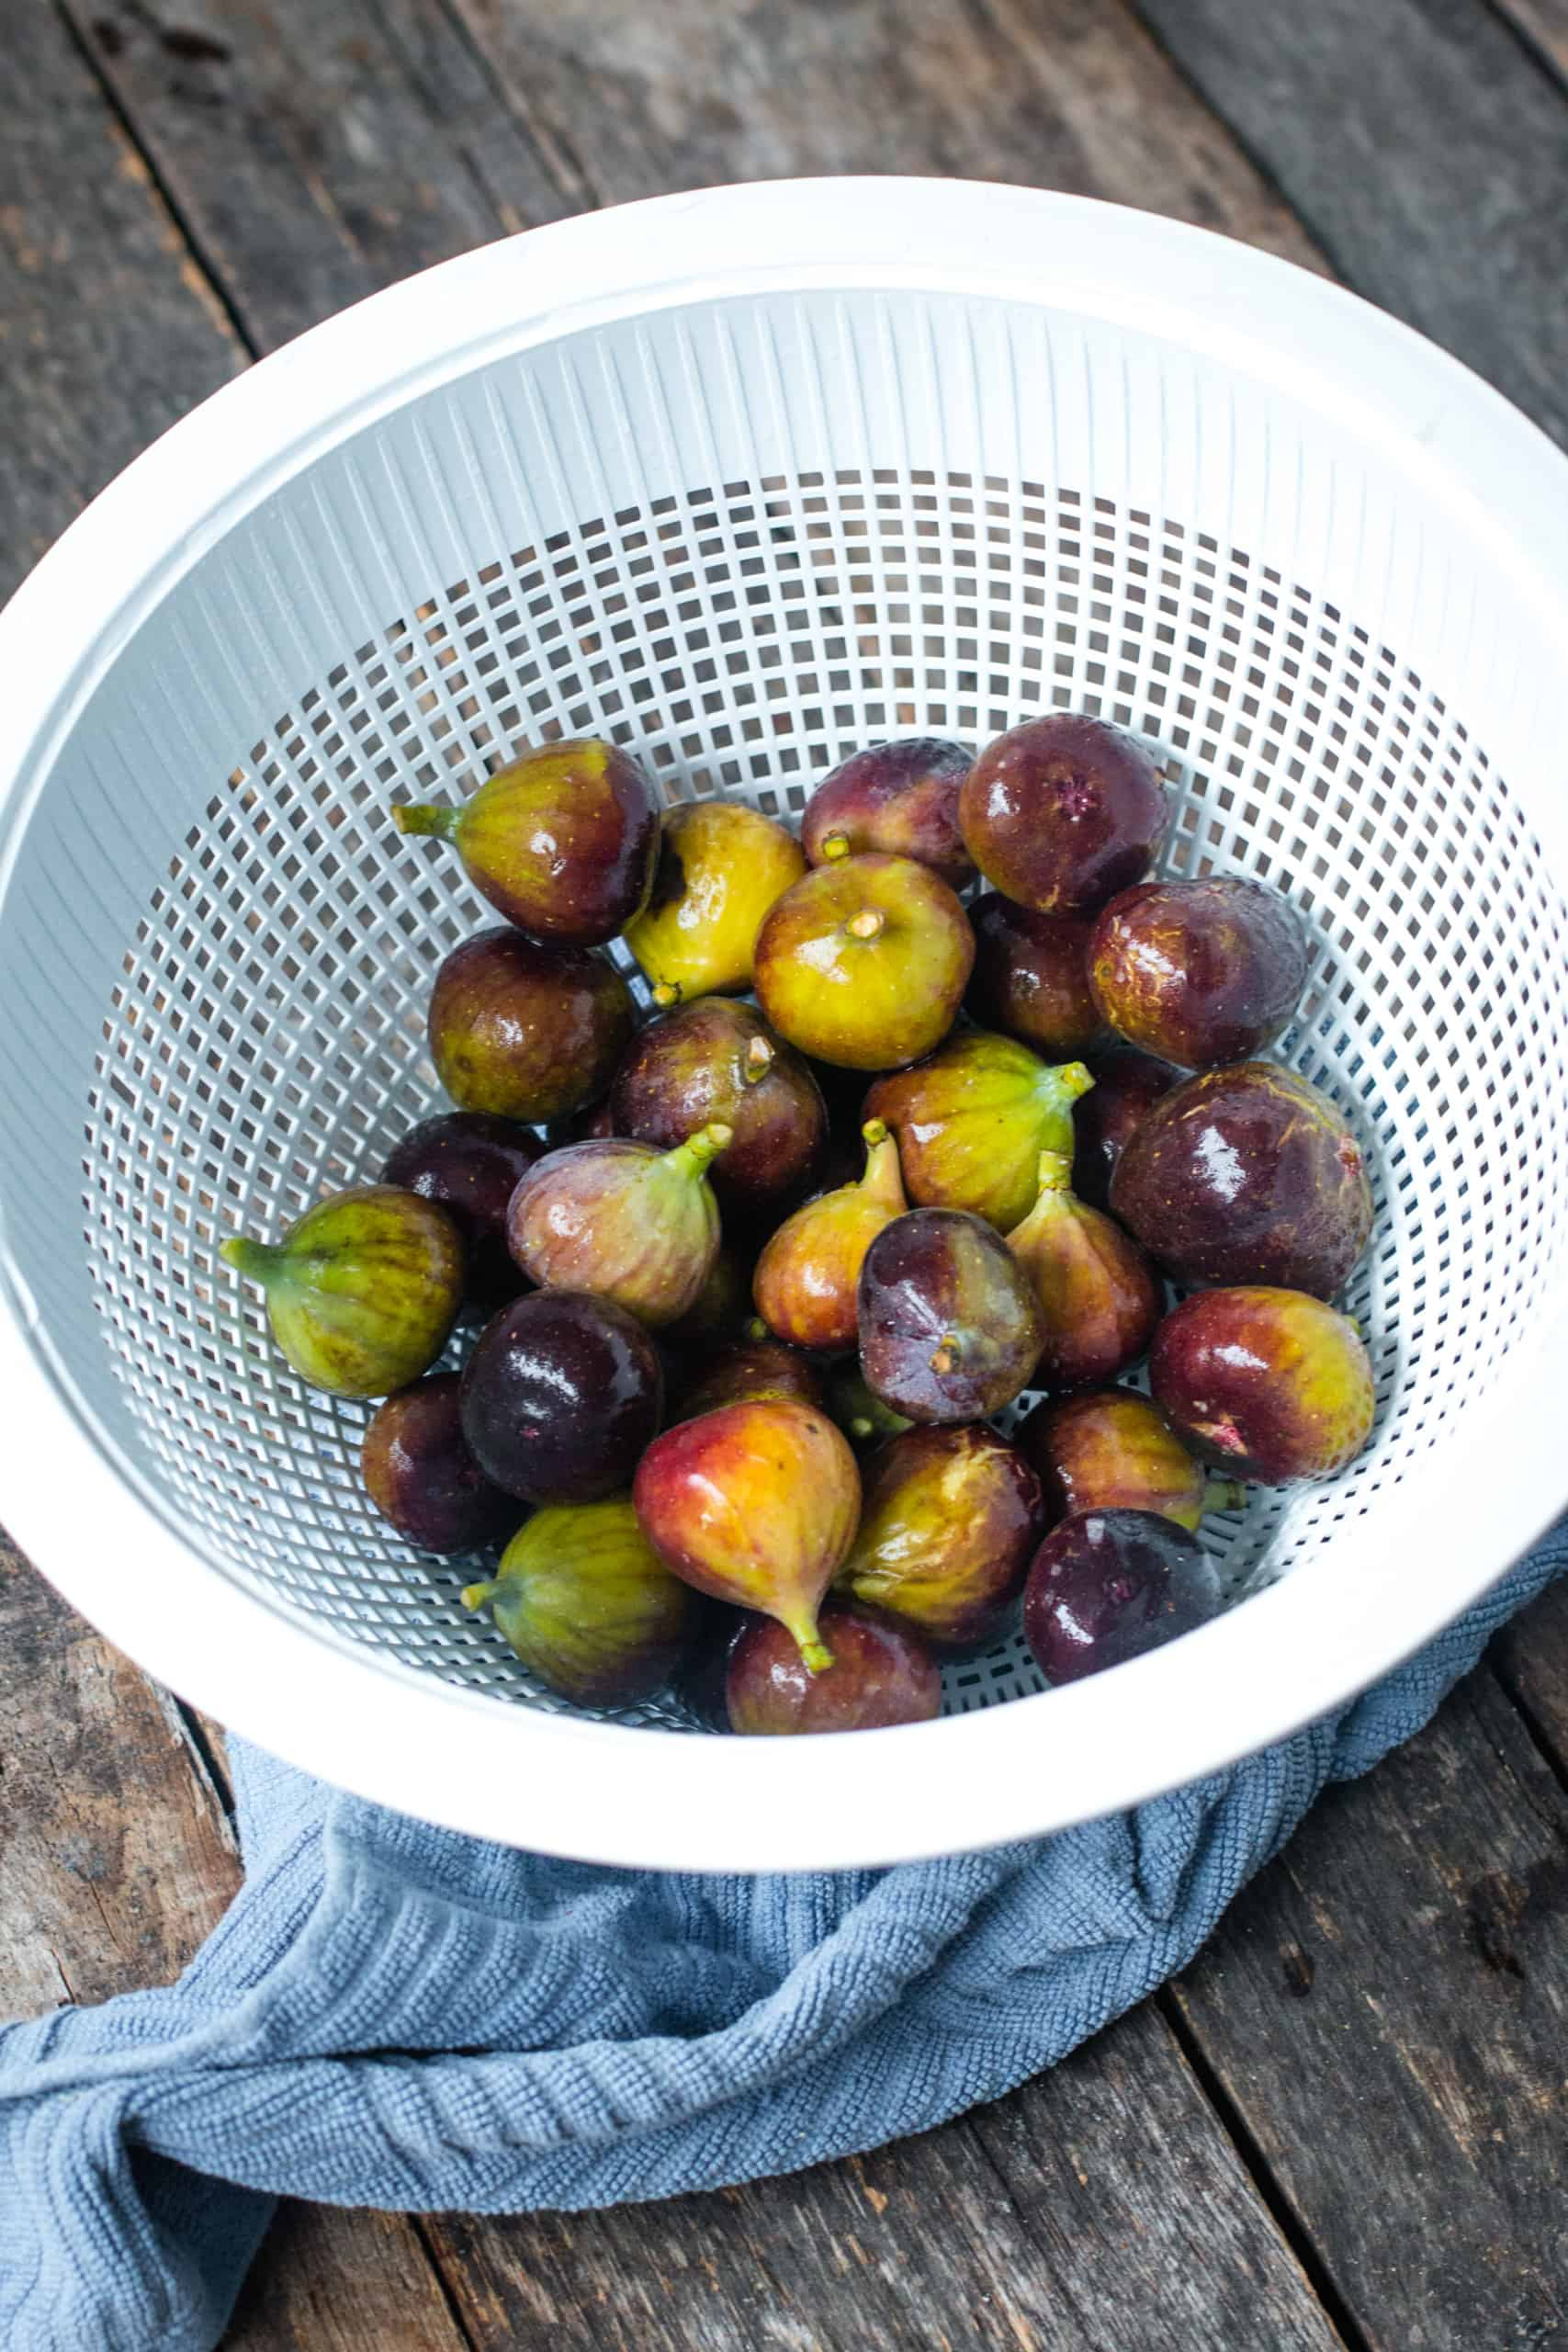 freshly washed fresh figs in a white colander